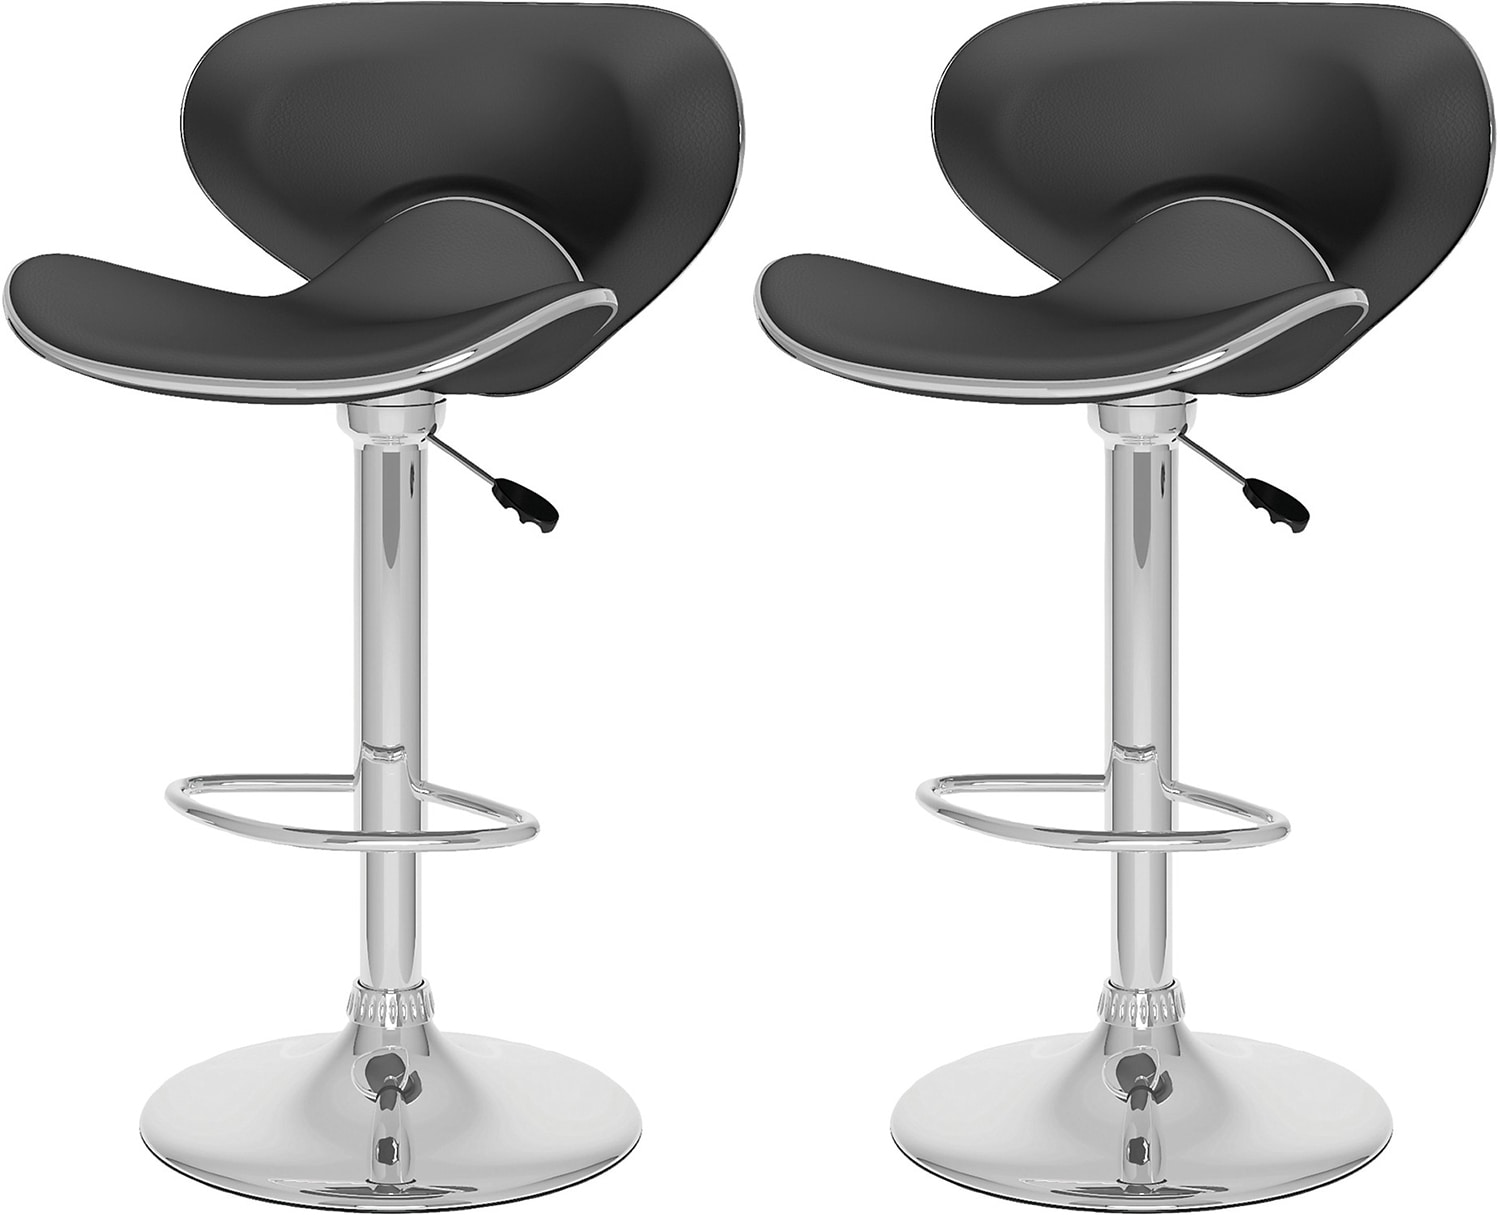 Dining Room Furniture - Curved Form-Fitting Adjustable Barstool Set of 2 - Black